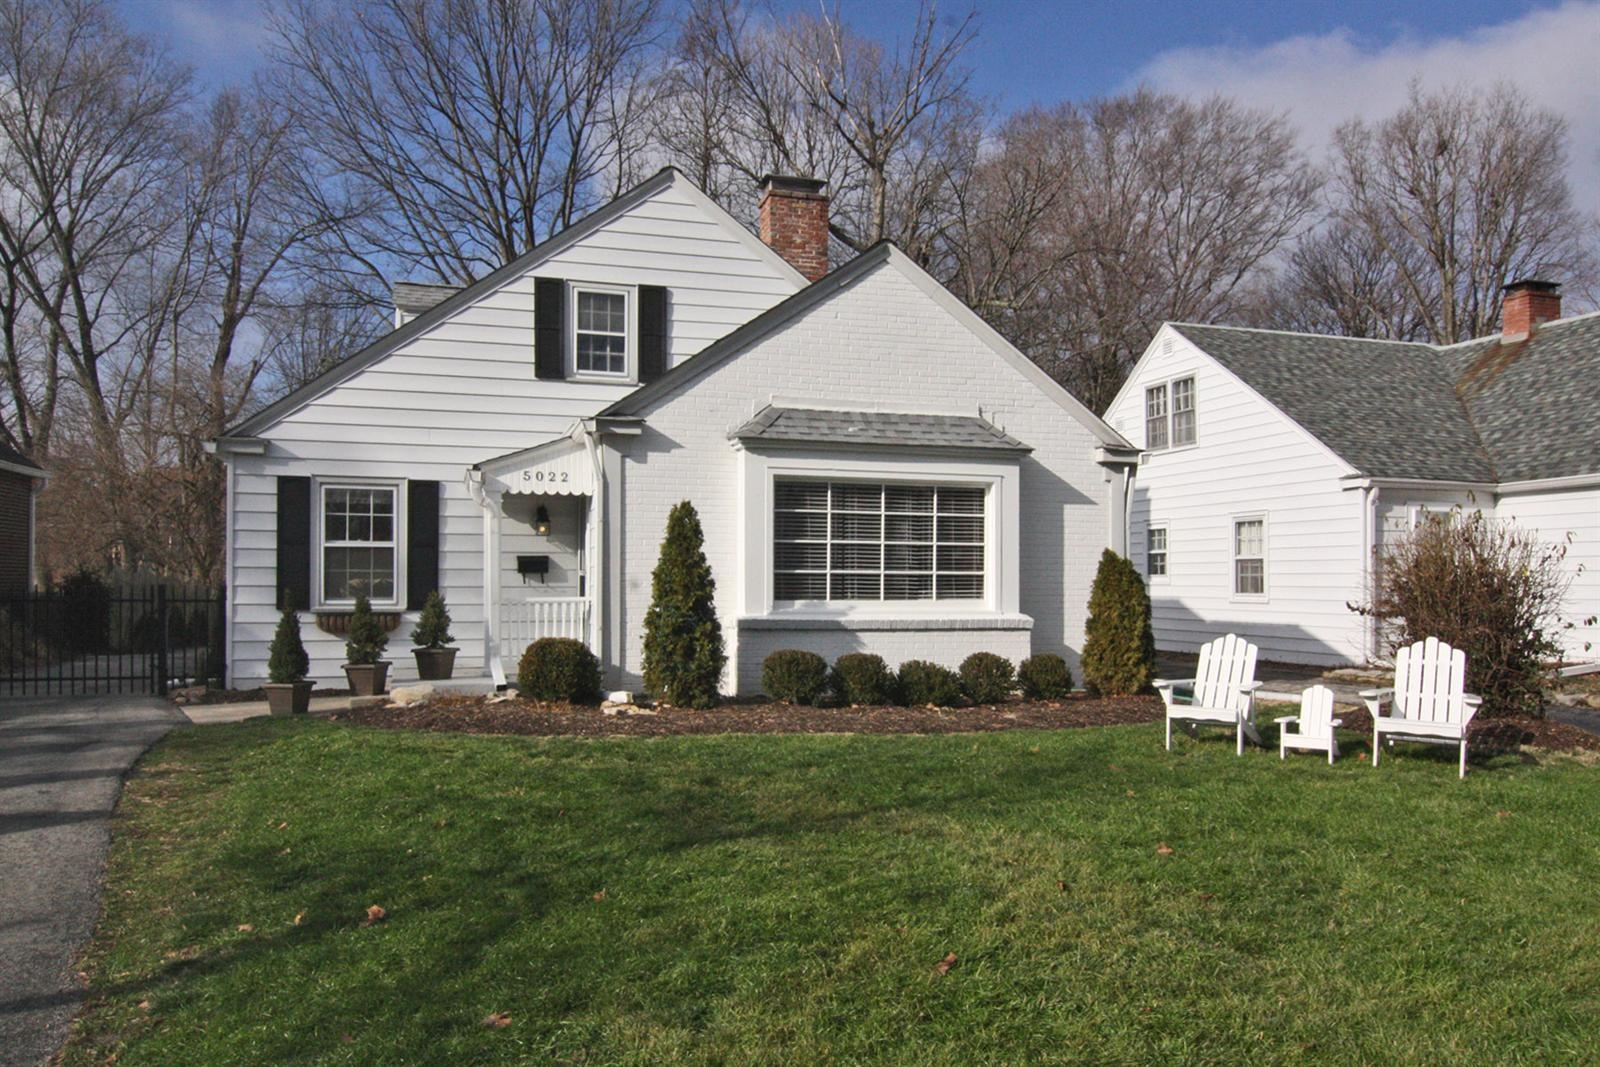 Real Estate Photography - 5022 Graceland Ave, Indianapolis, IN, 46208 - Location 1